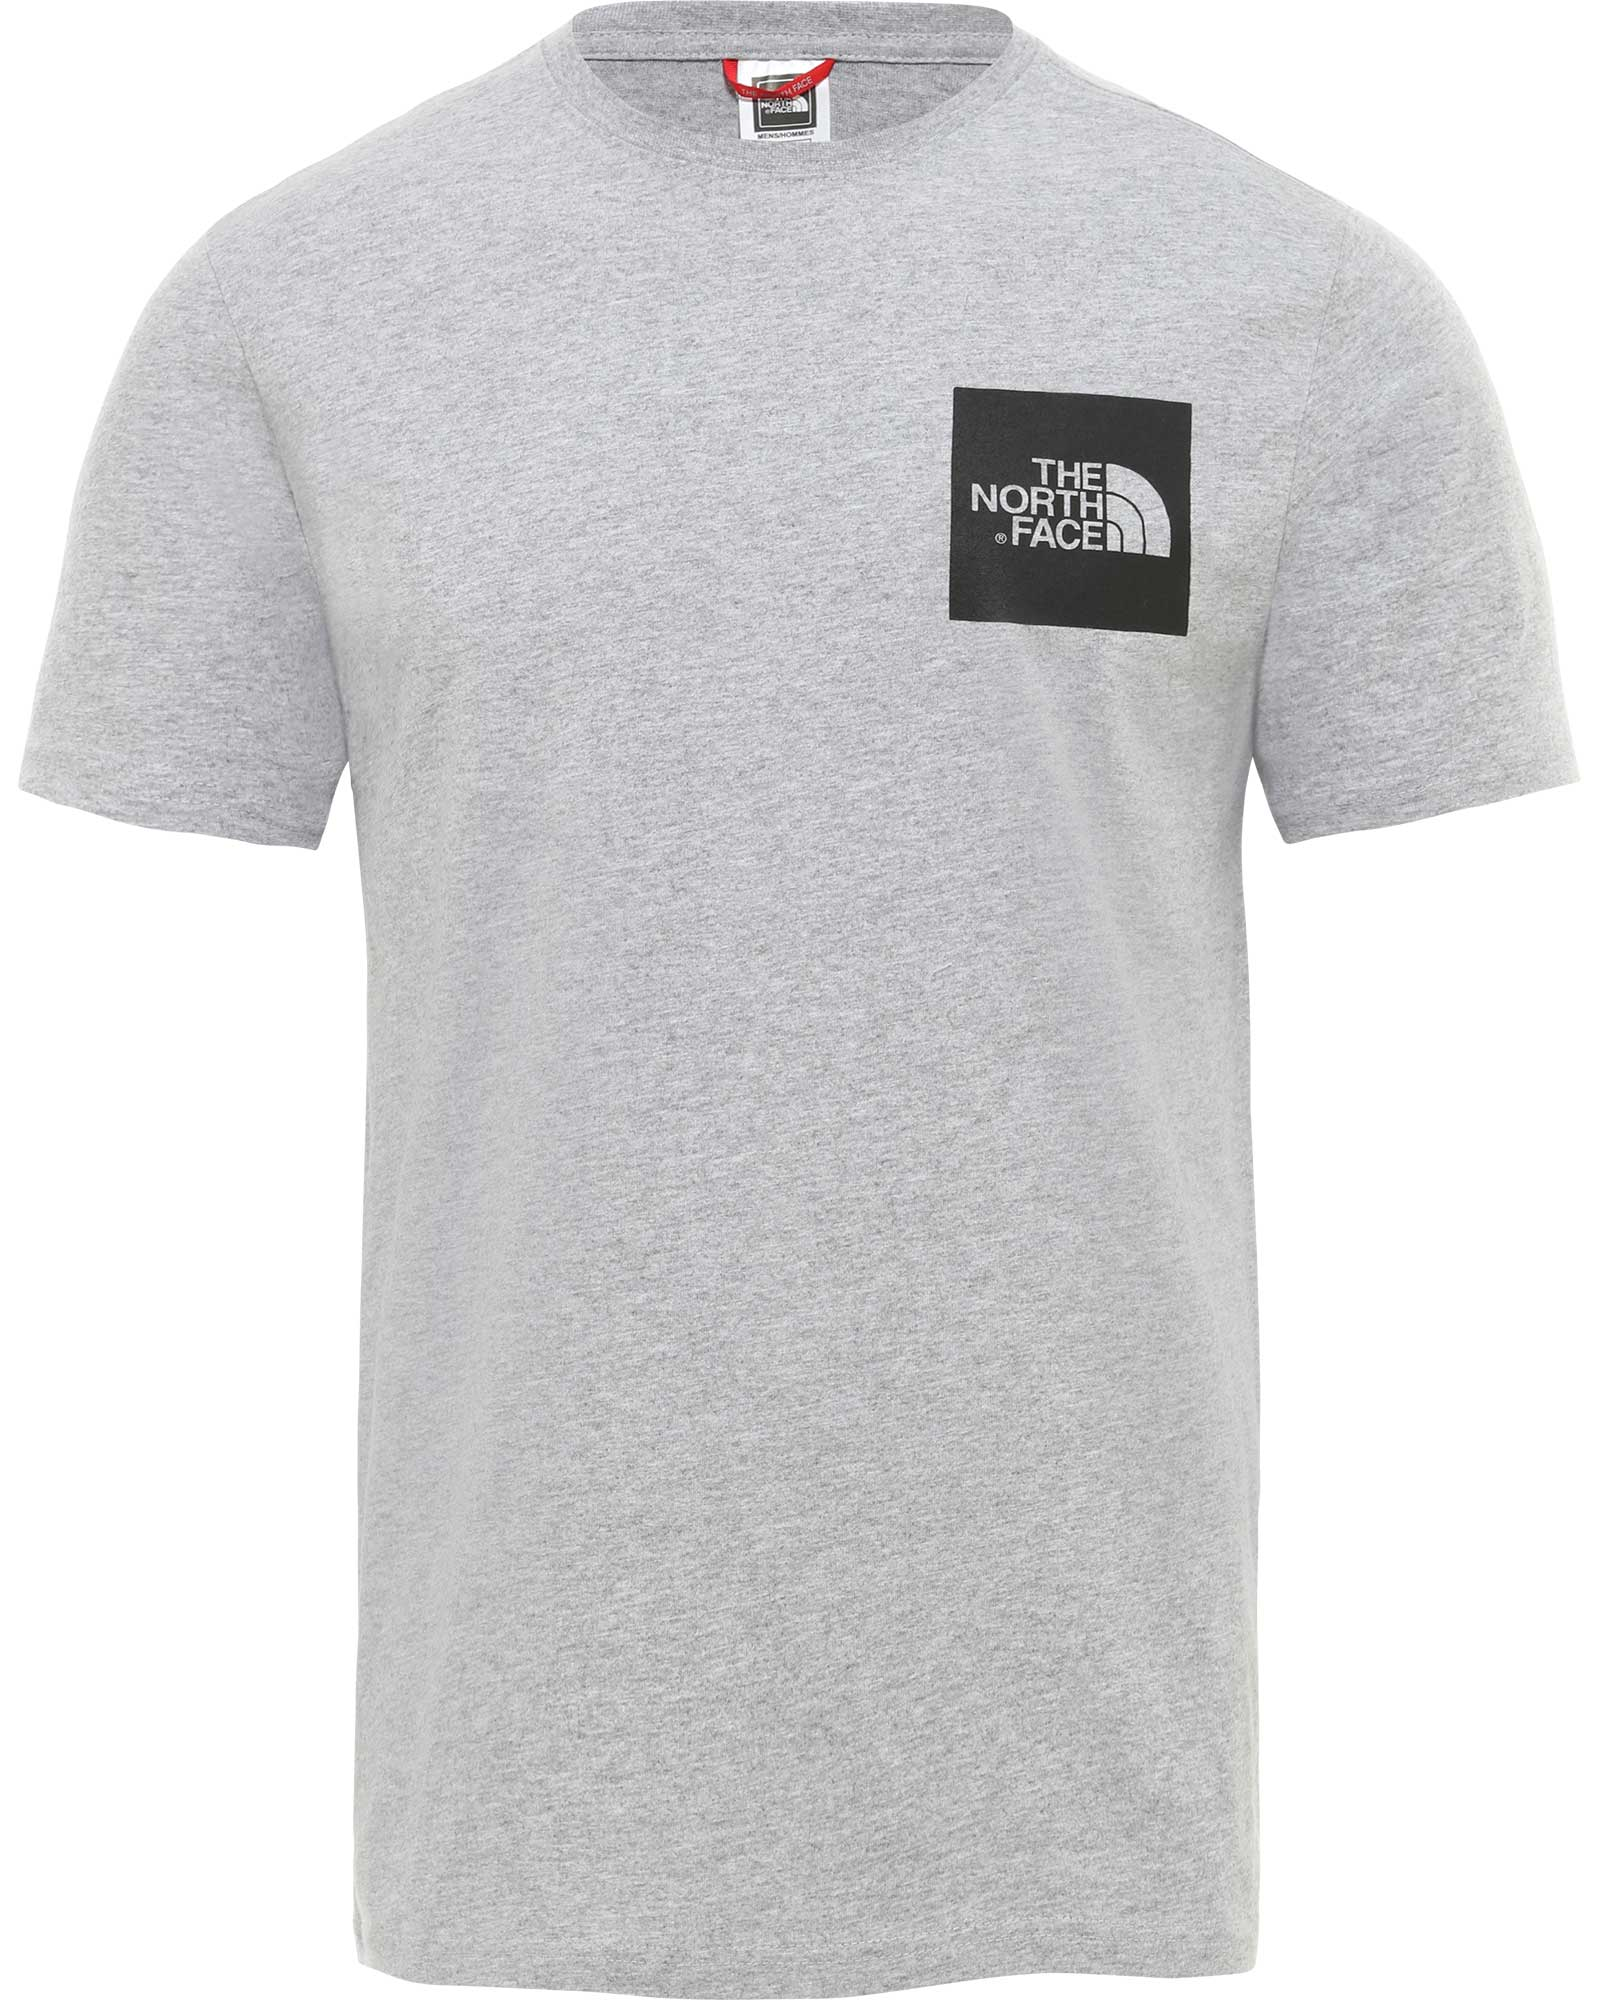 The North Face Men's Fine T-Shirt 0